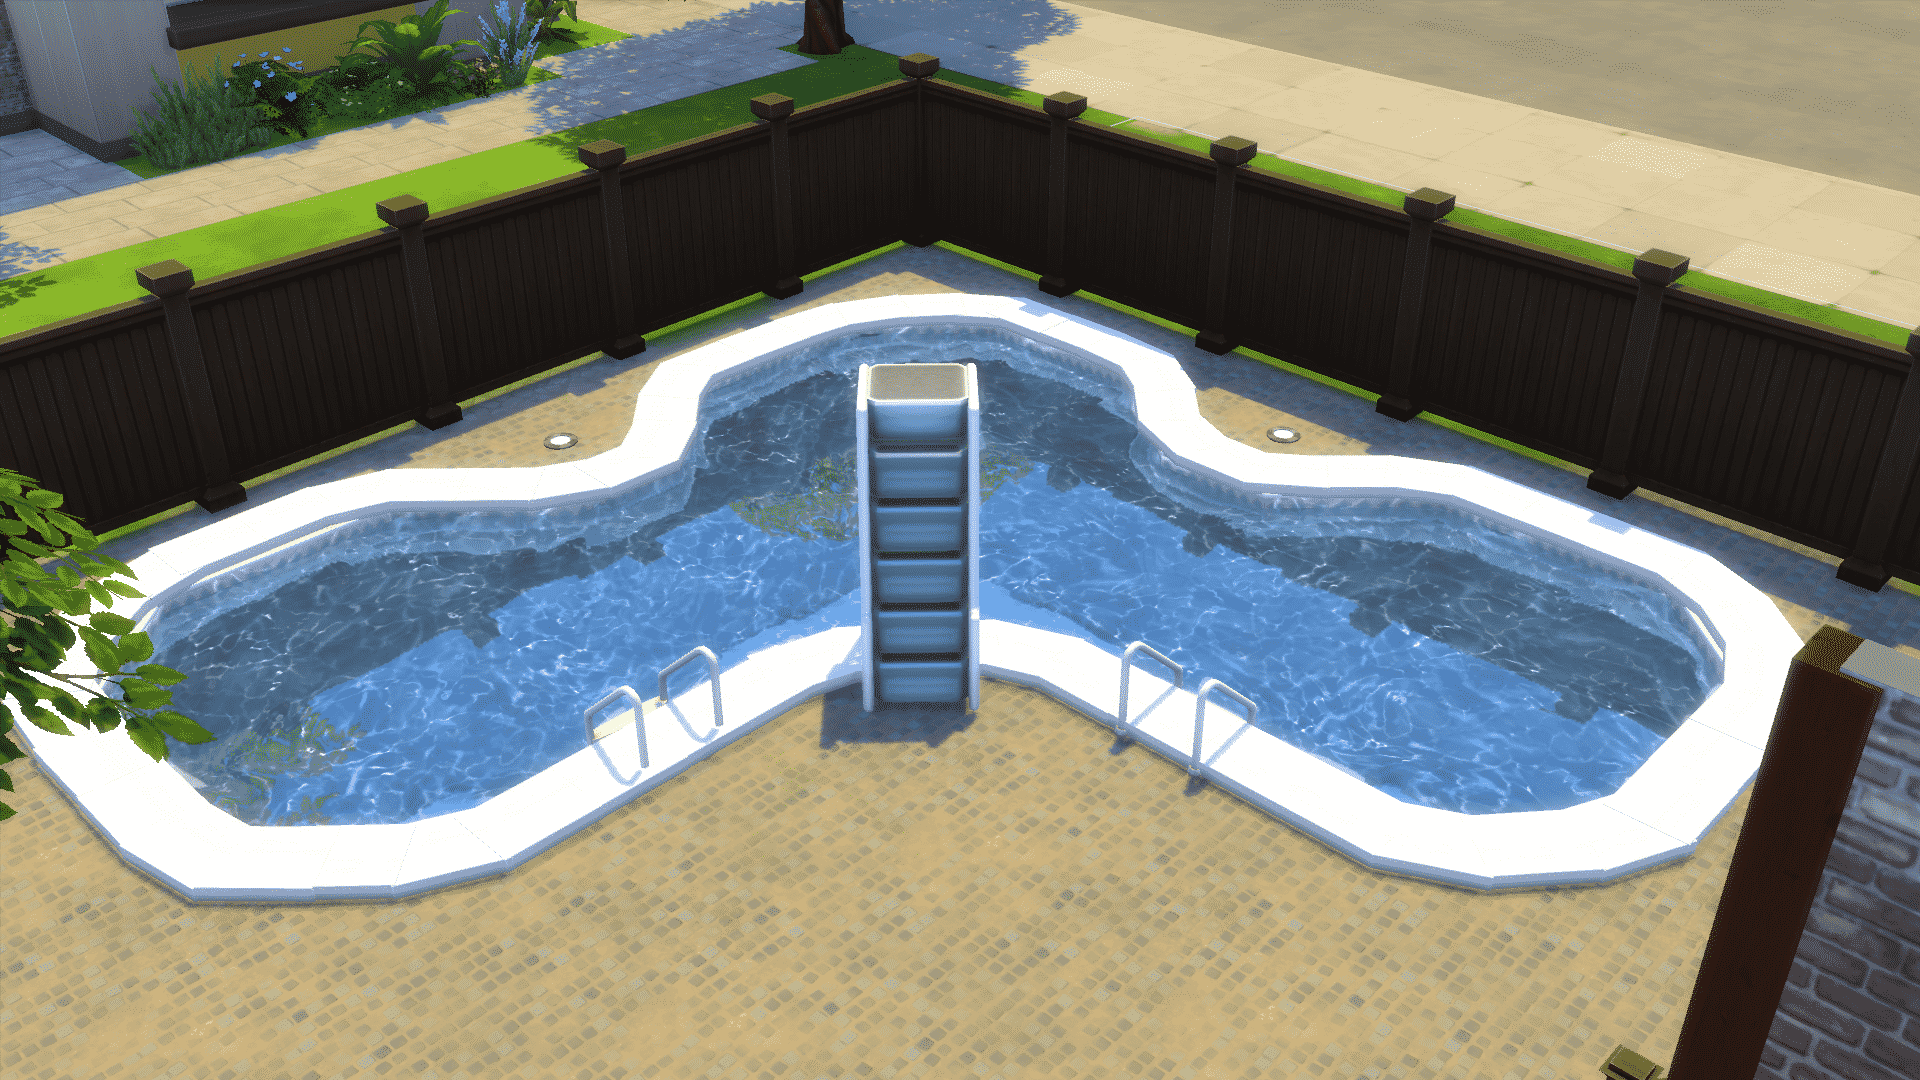 The sims 4 building decorating your backyard for Pool design sims 3